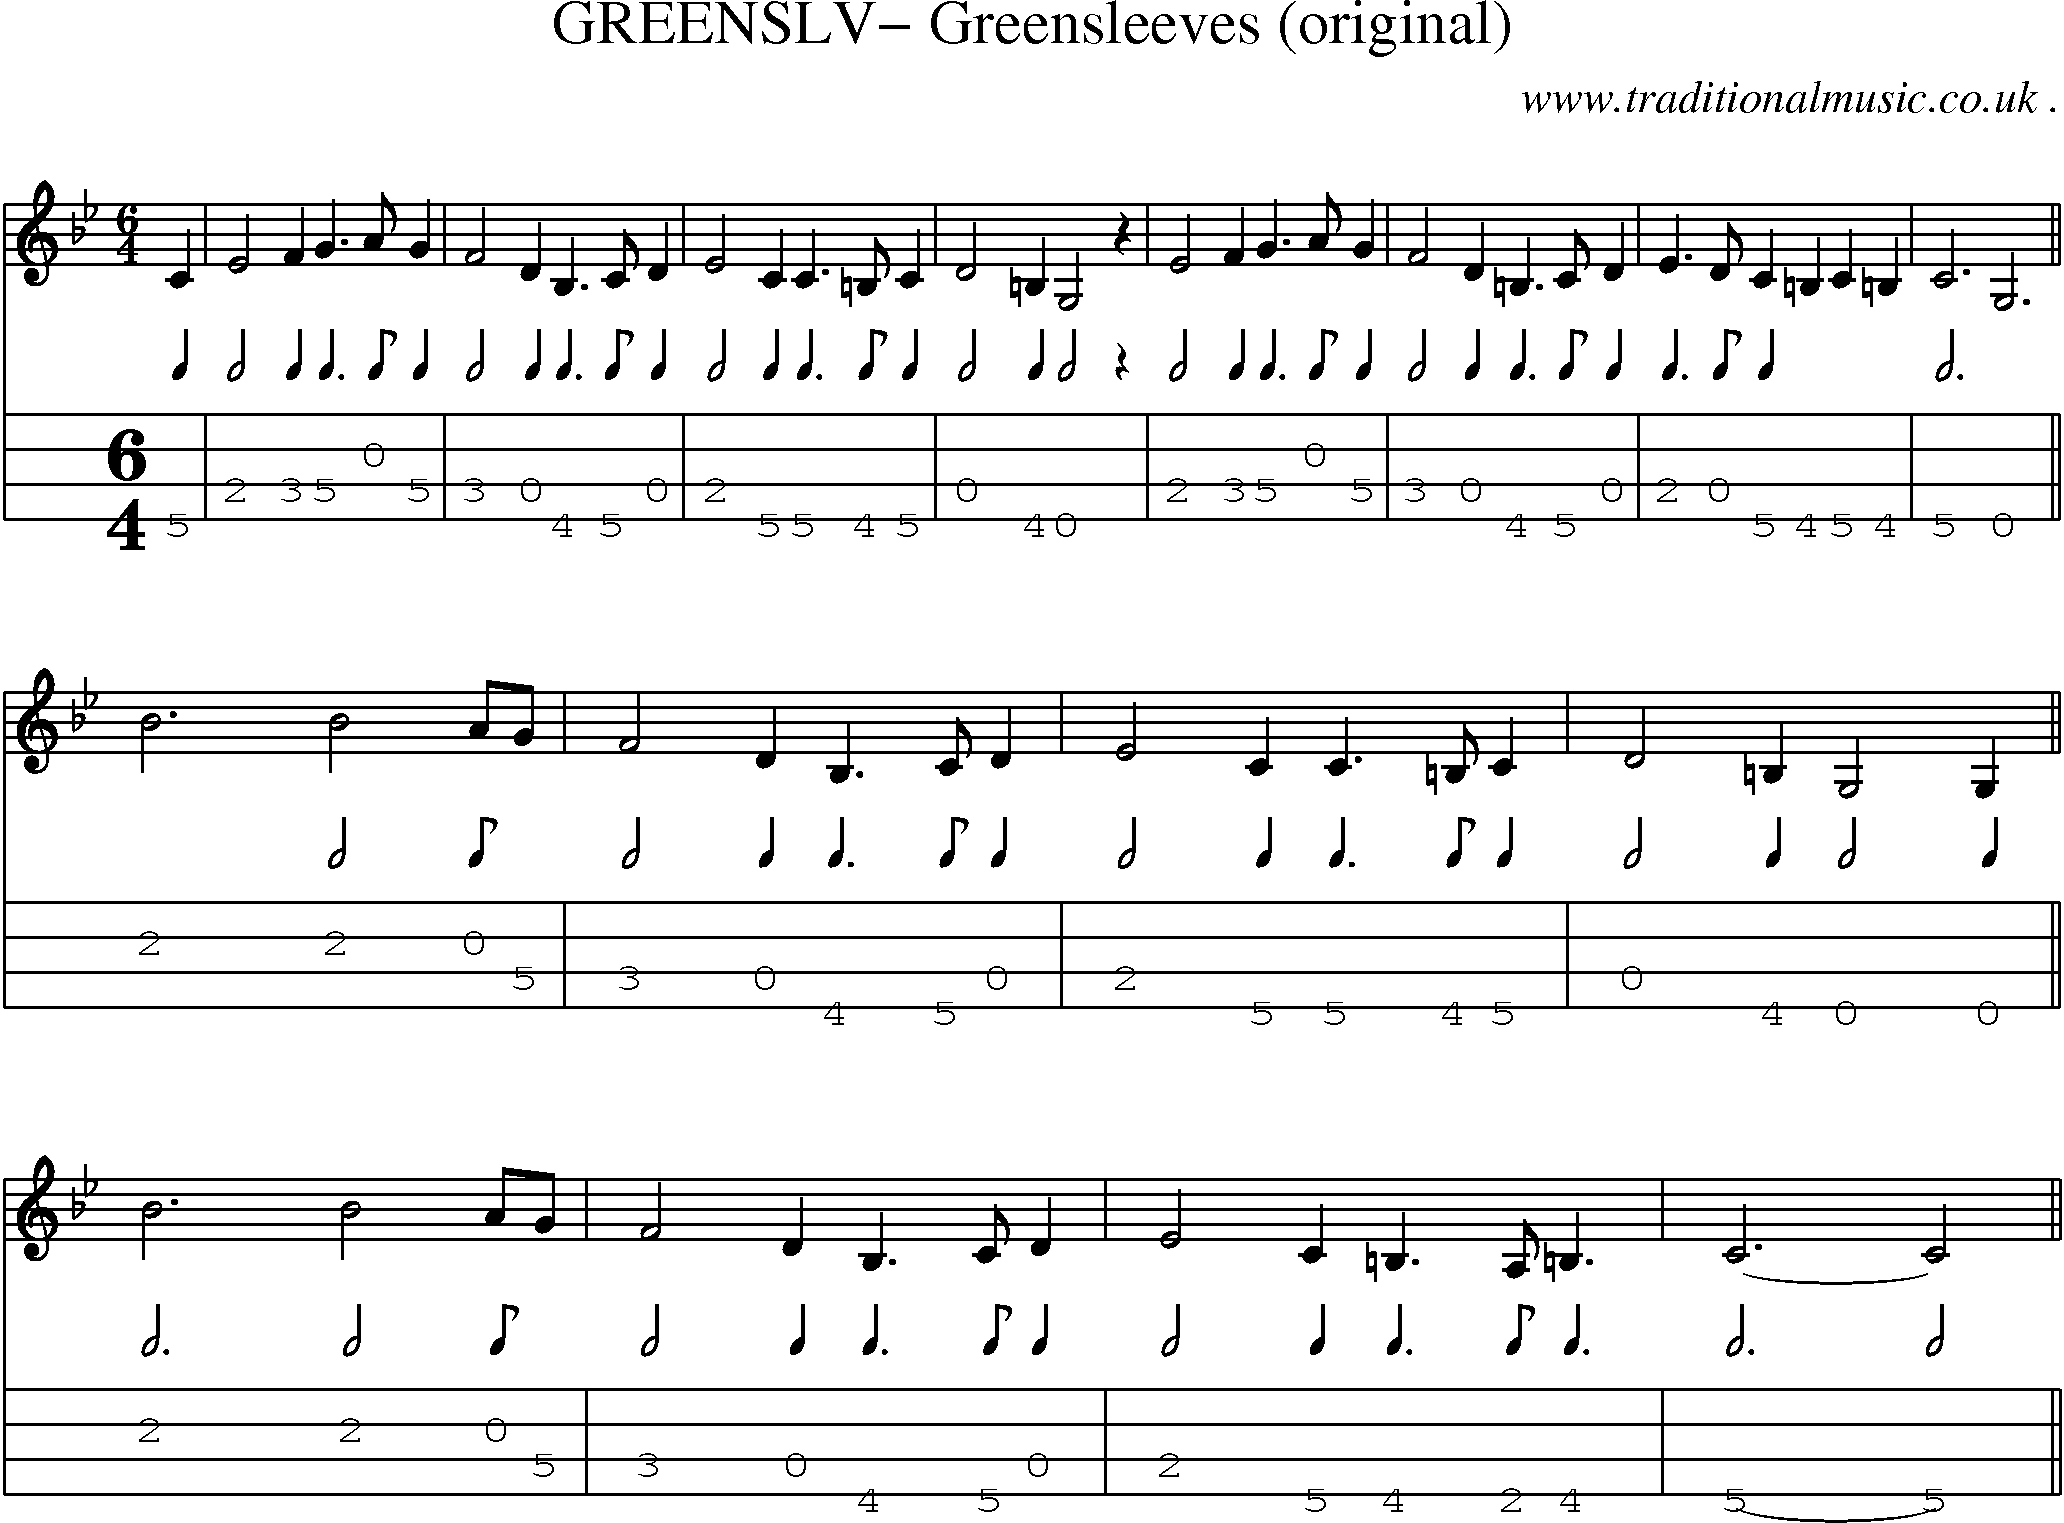 Folk and Traditional Music, Sheet-Music, Mandolin tab, midi, mp3 and PDF for: Greenslv ...